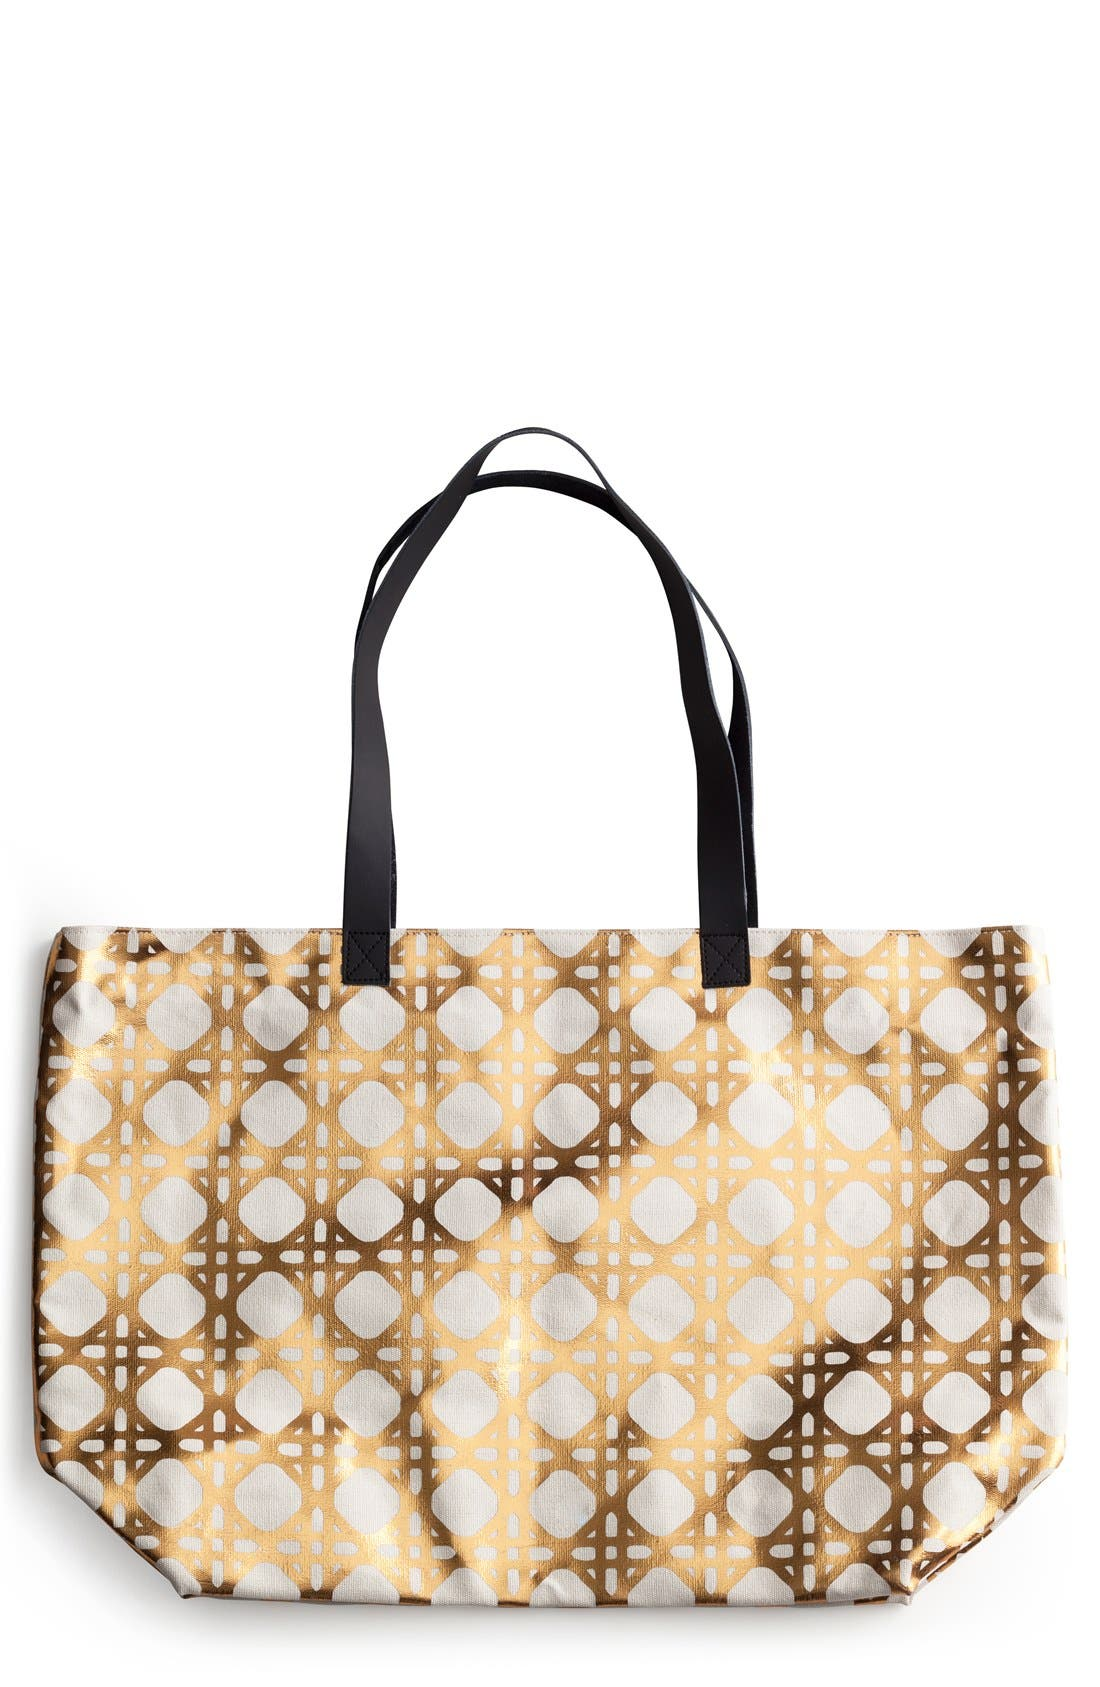 'Trellis' Tote,                         Main,                         color, Metallic Gold